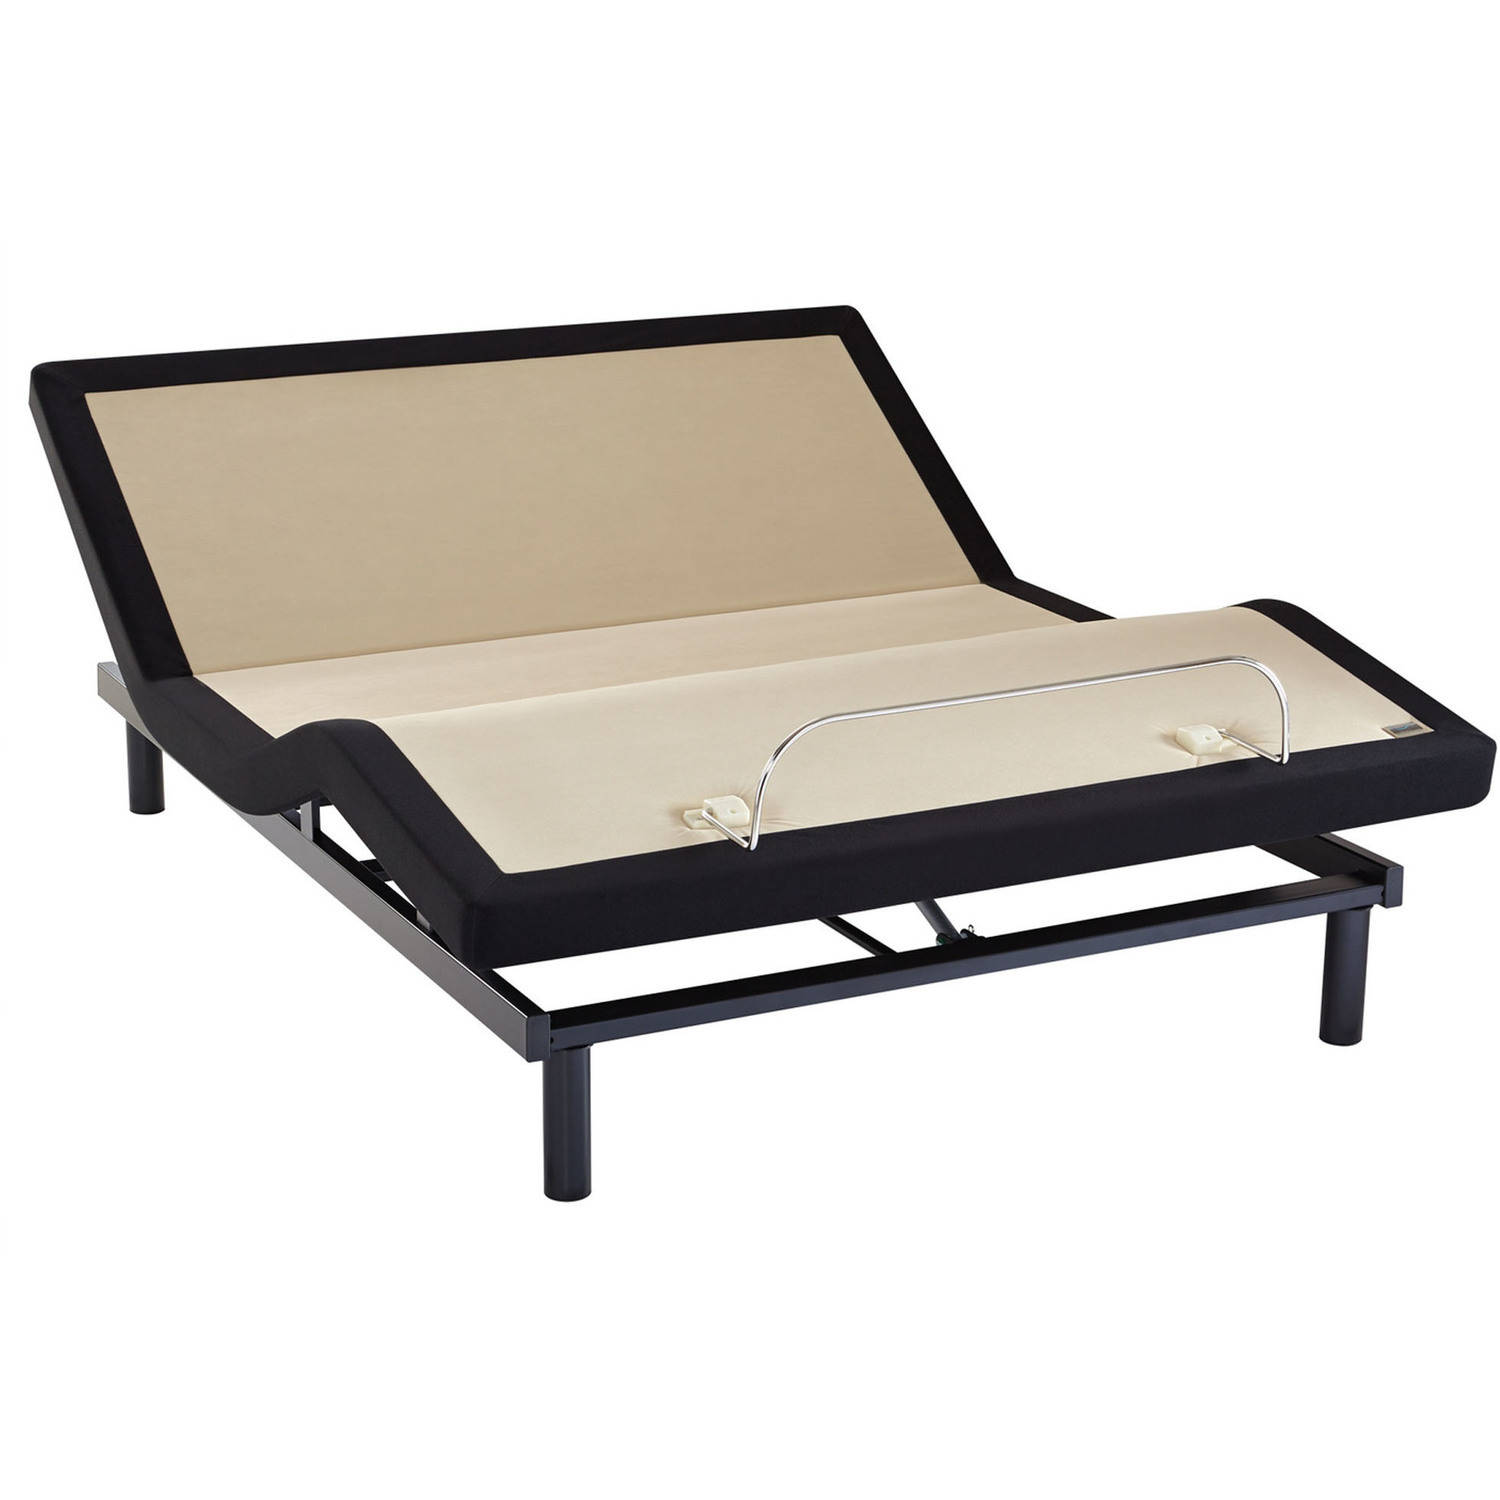 Ease Adjustable Bed Base 1.0, Multiple Sizes